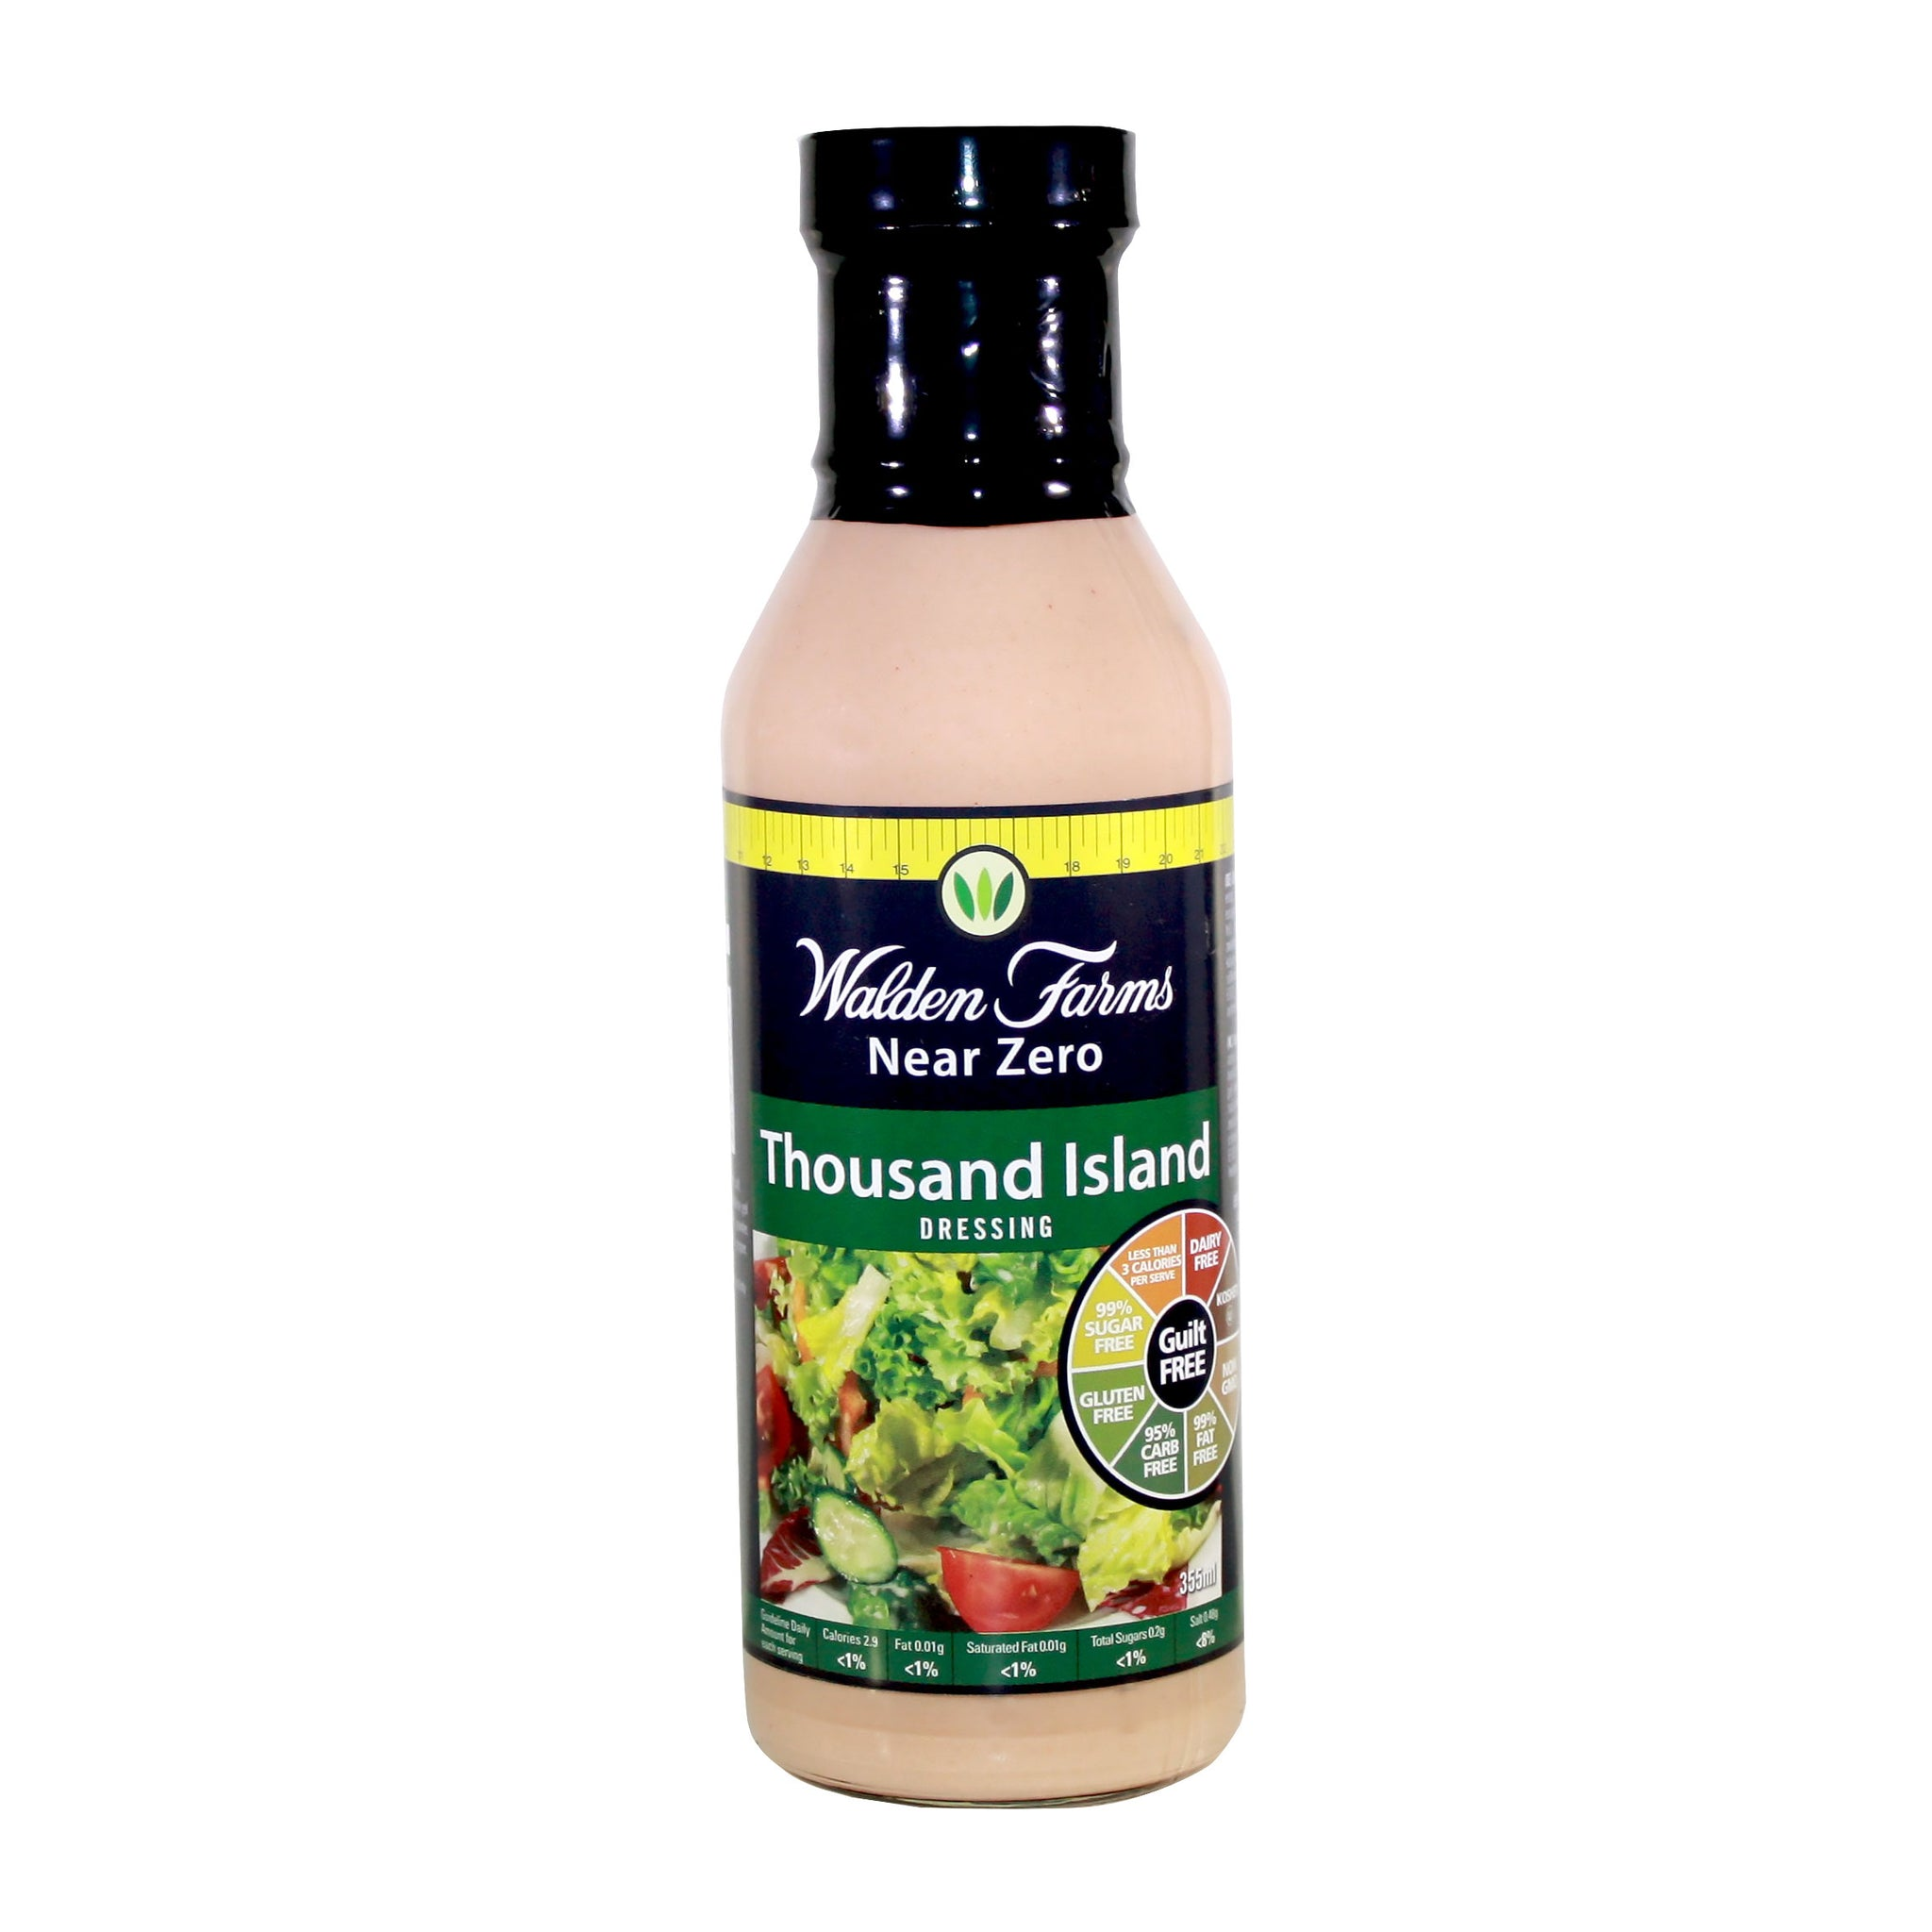 Vegan Thousand Island Dressing with Near Zero Fat, Sugar and Calories